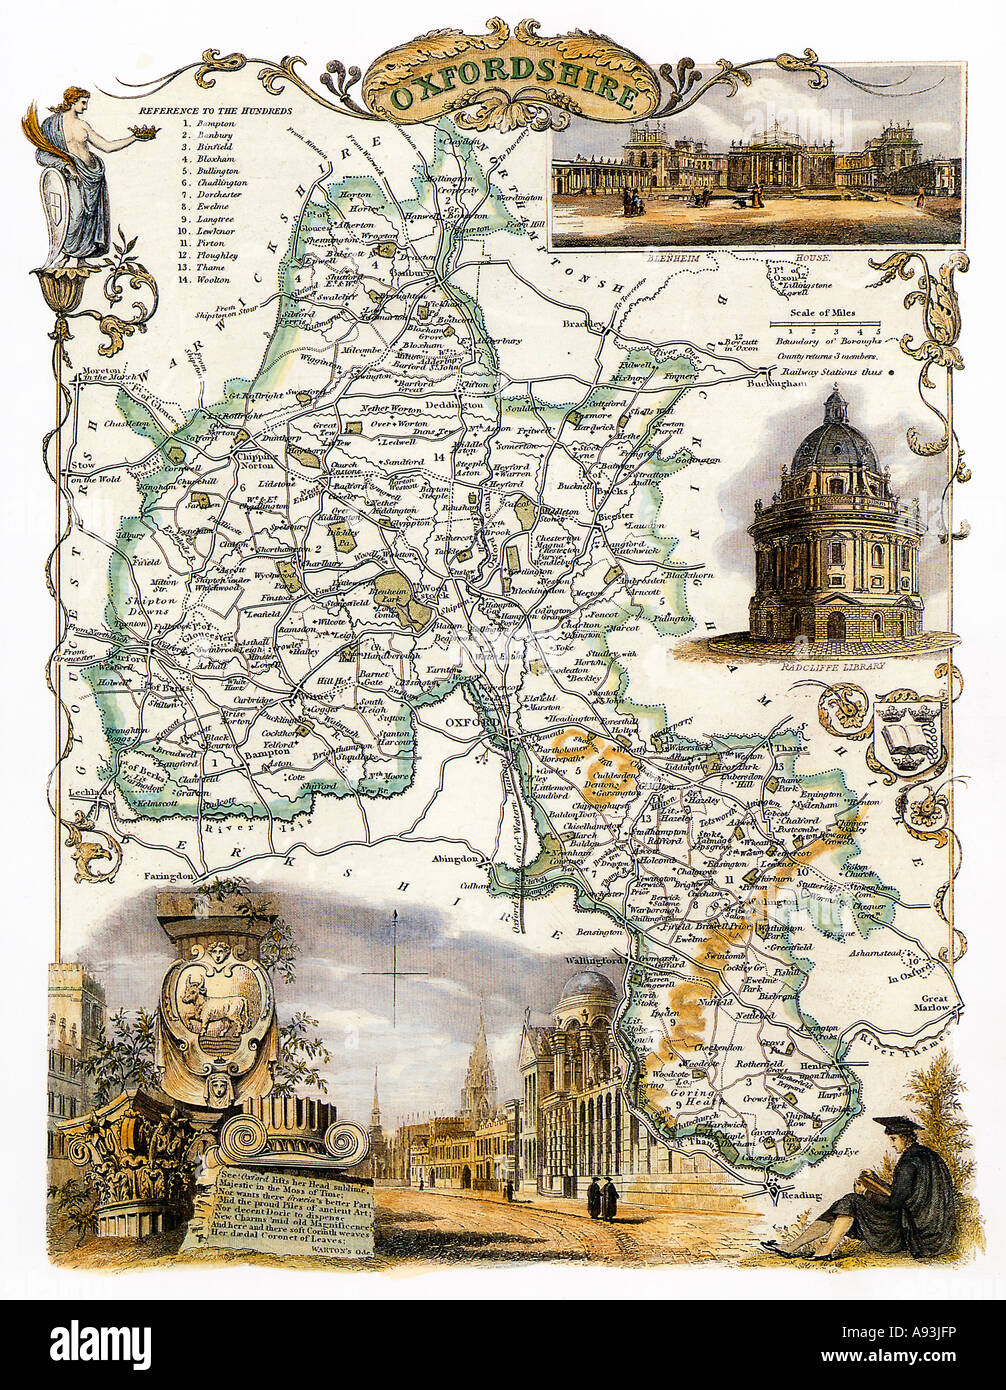 Oxfordshire Map Victorian map of the English county by Thomas Moule with illustrations of Blenheim and the City - Stock Image